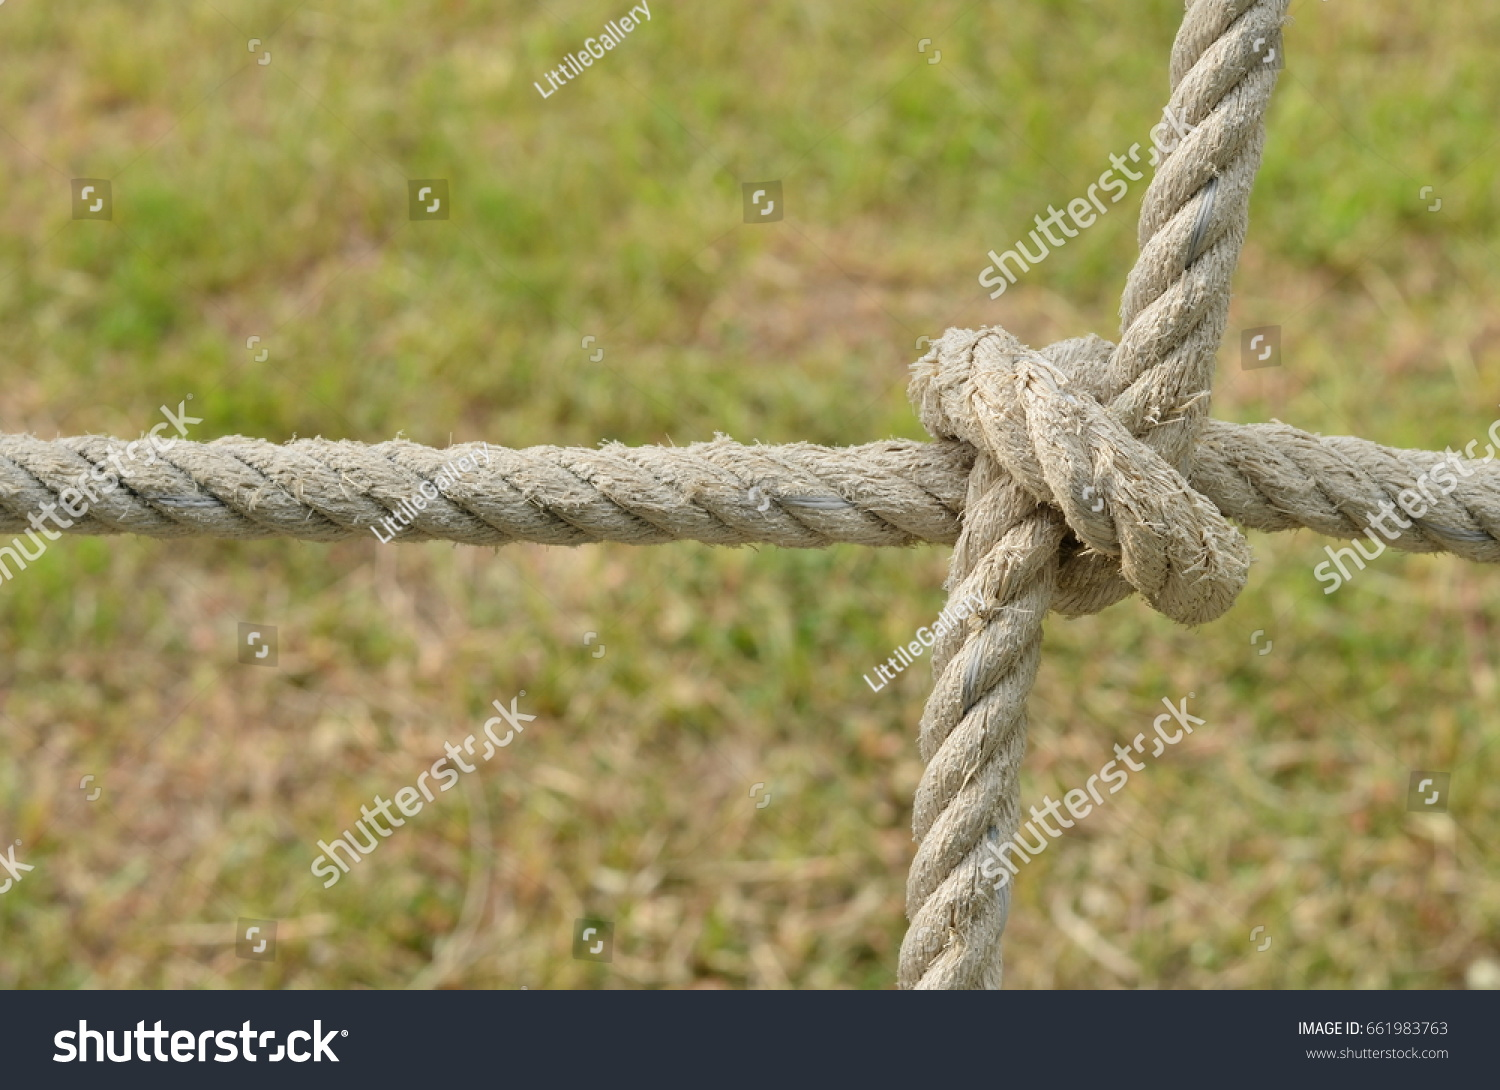 Rope knot line tied together nature stock photo 661983763 rope knot line tied together with nature backgroundas a symbol for trust teamwork or biocorpaavc Choice Image